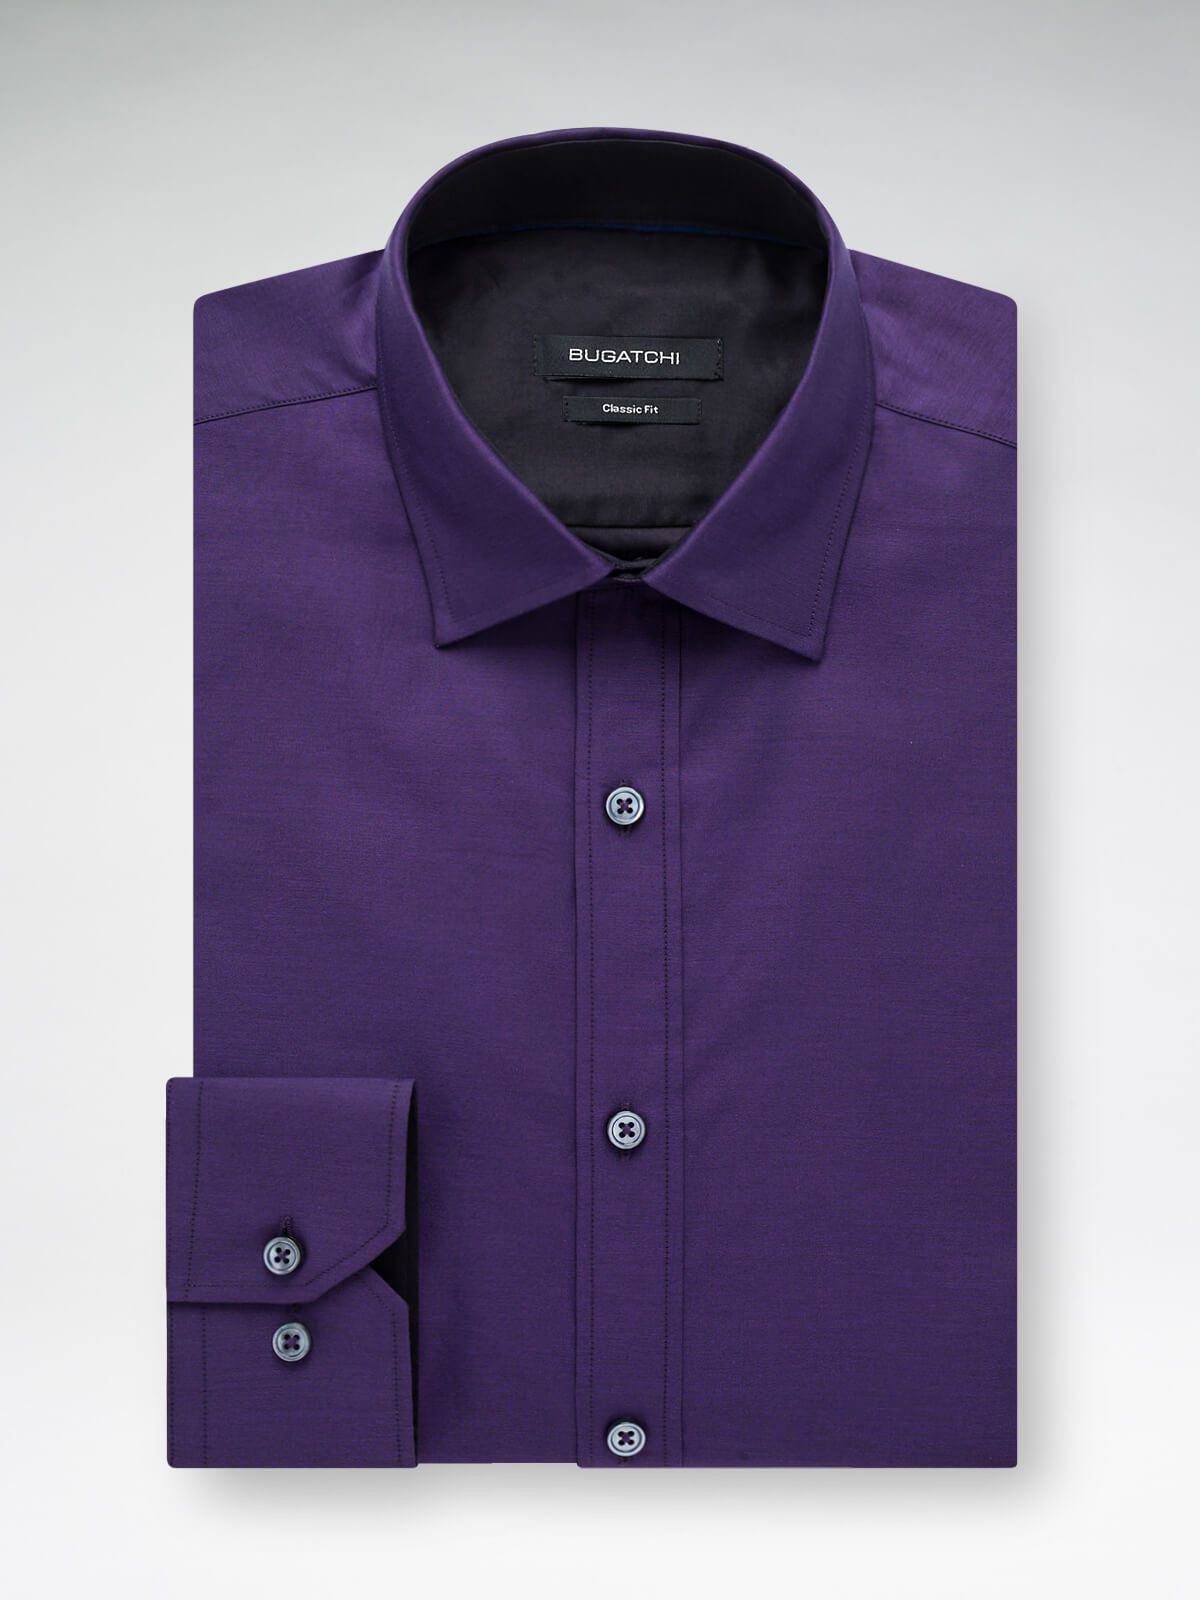 Bugatchi Plum Solid Classic Fit Sport Shirt - Rainwater's Men's Clothing and Tuxedo Rental